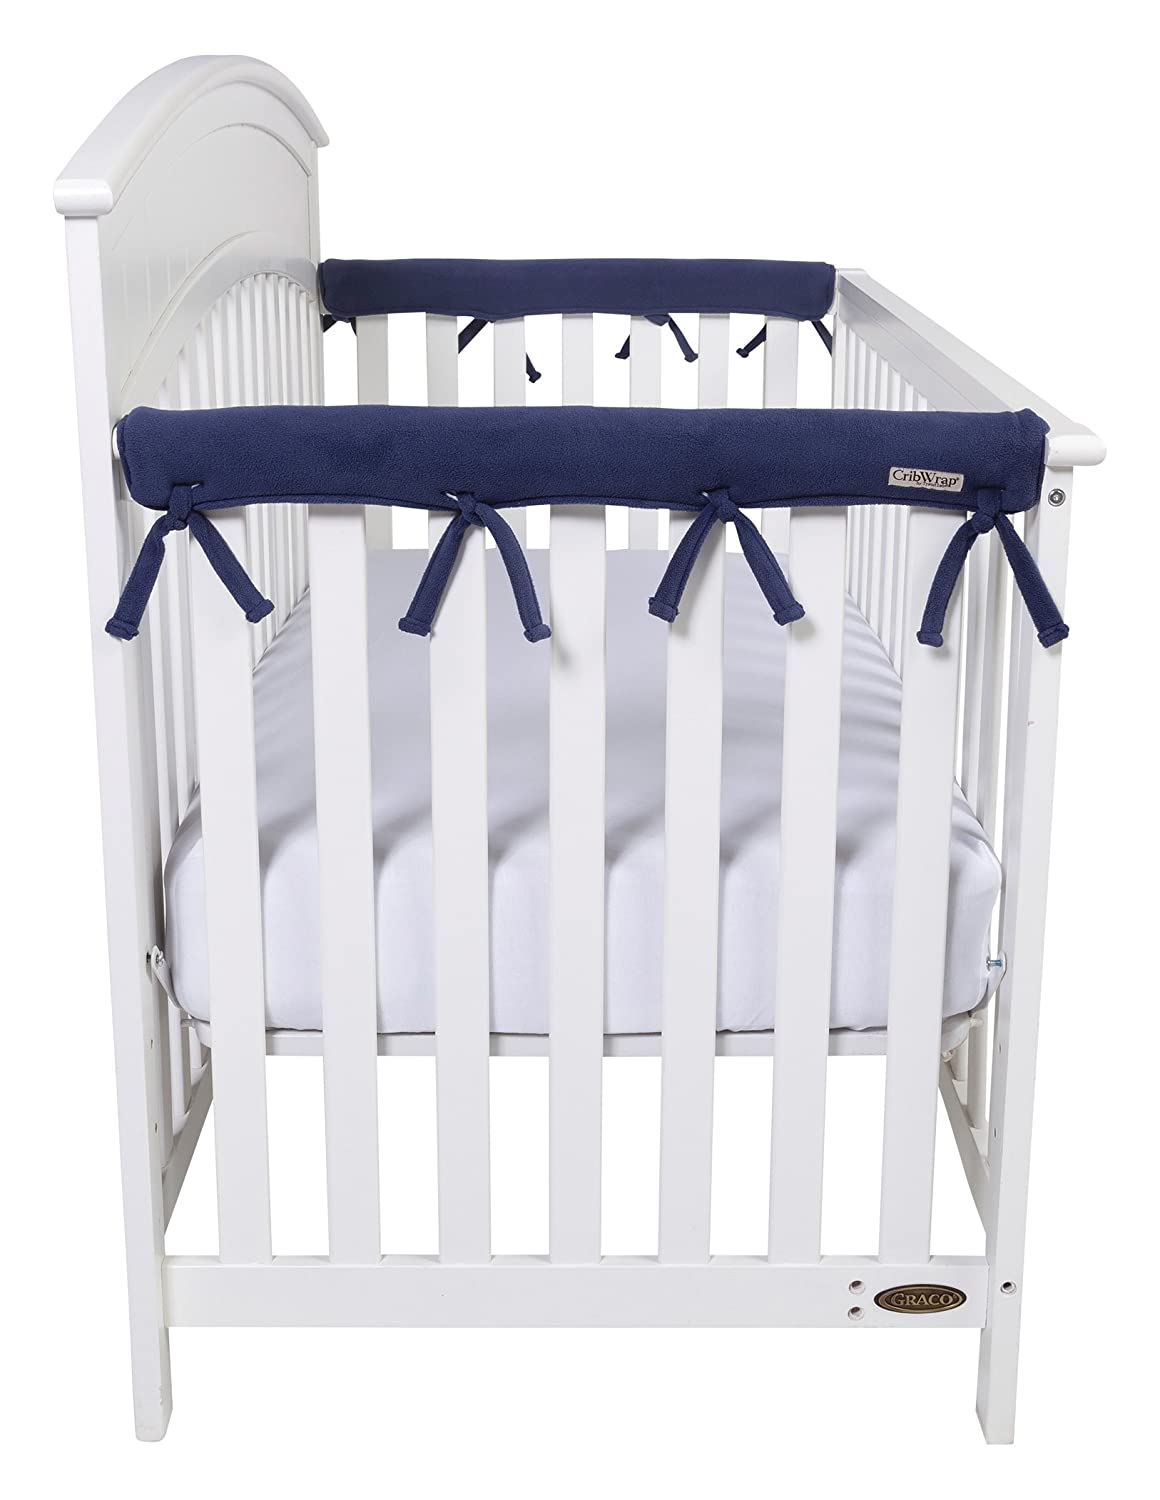 Trend Lab Waterproof CribWrap Rail Cover - For Narrow Side Crib Rails Made to Fit Rails up to 8